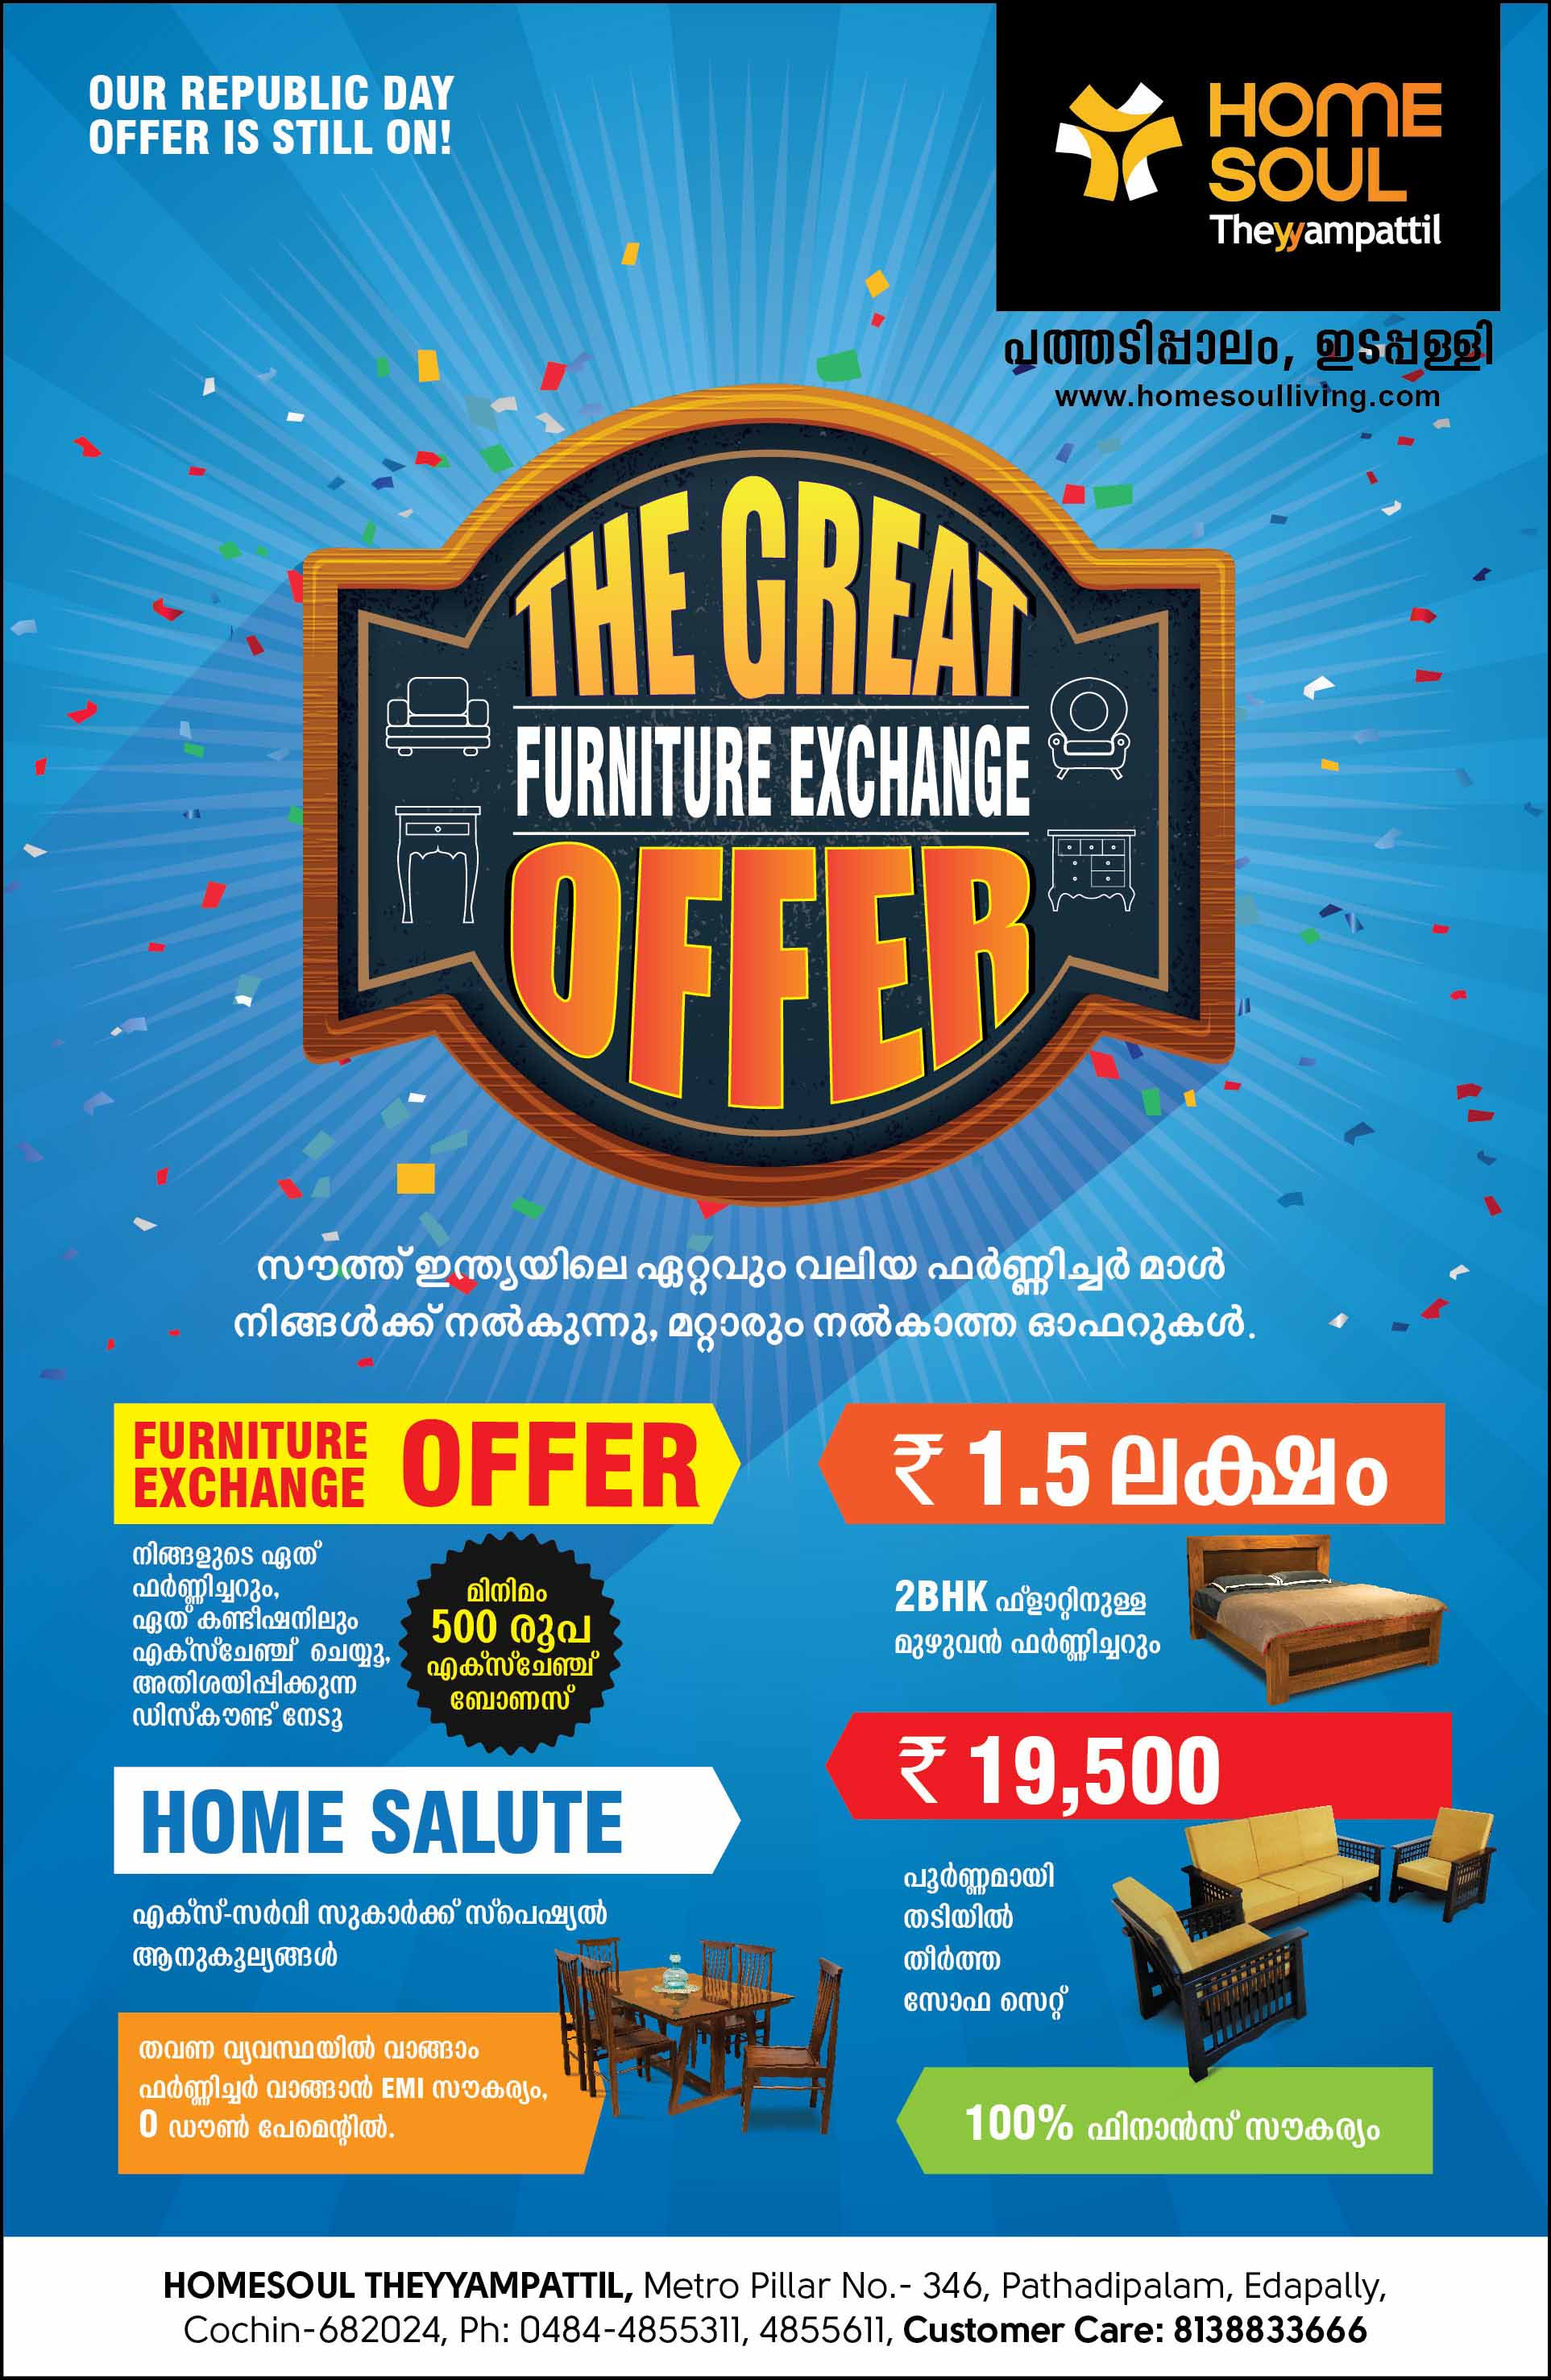 Exceptionnel Furniture Exchange Offer